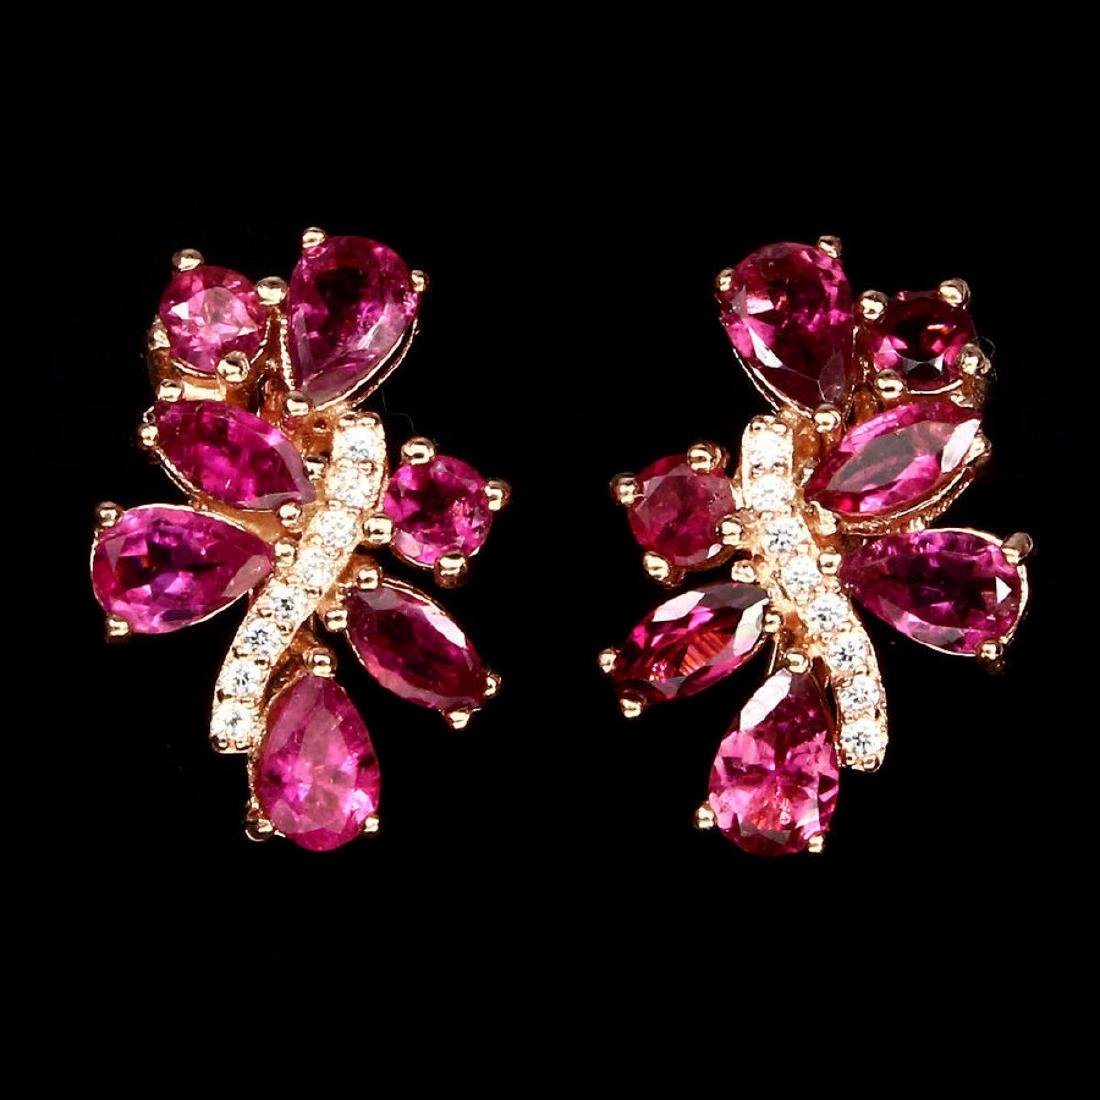 Stunning Top Rich Pink Tourmaline Earrings